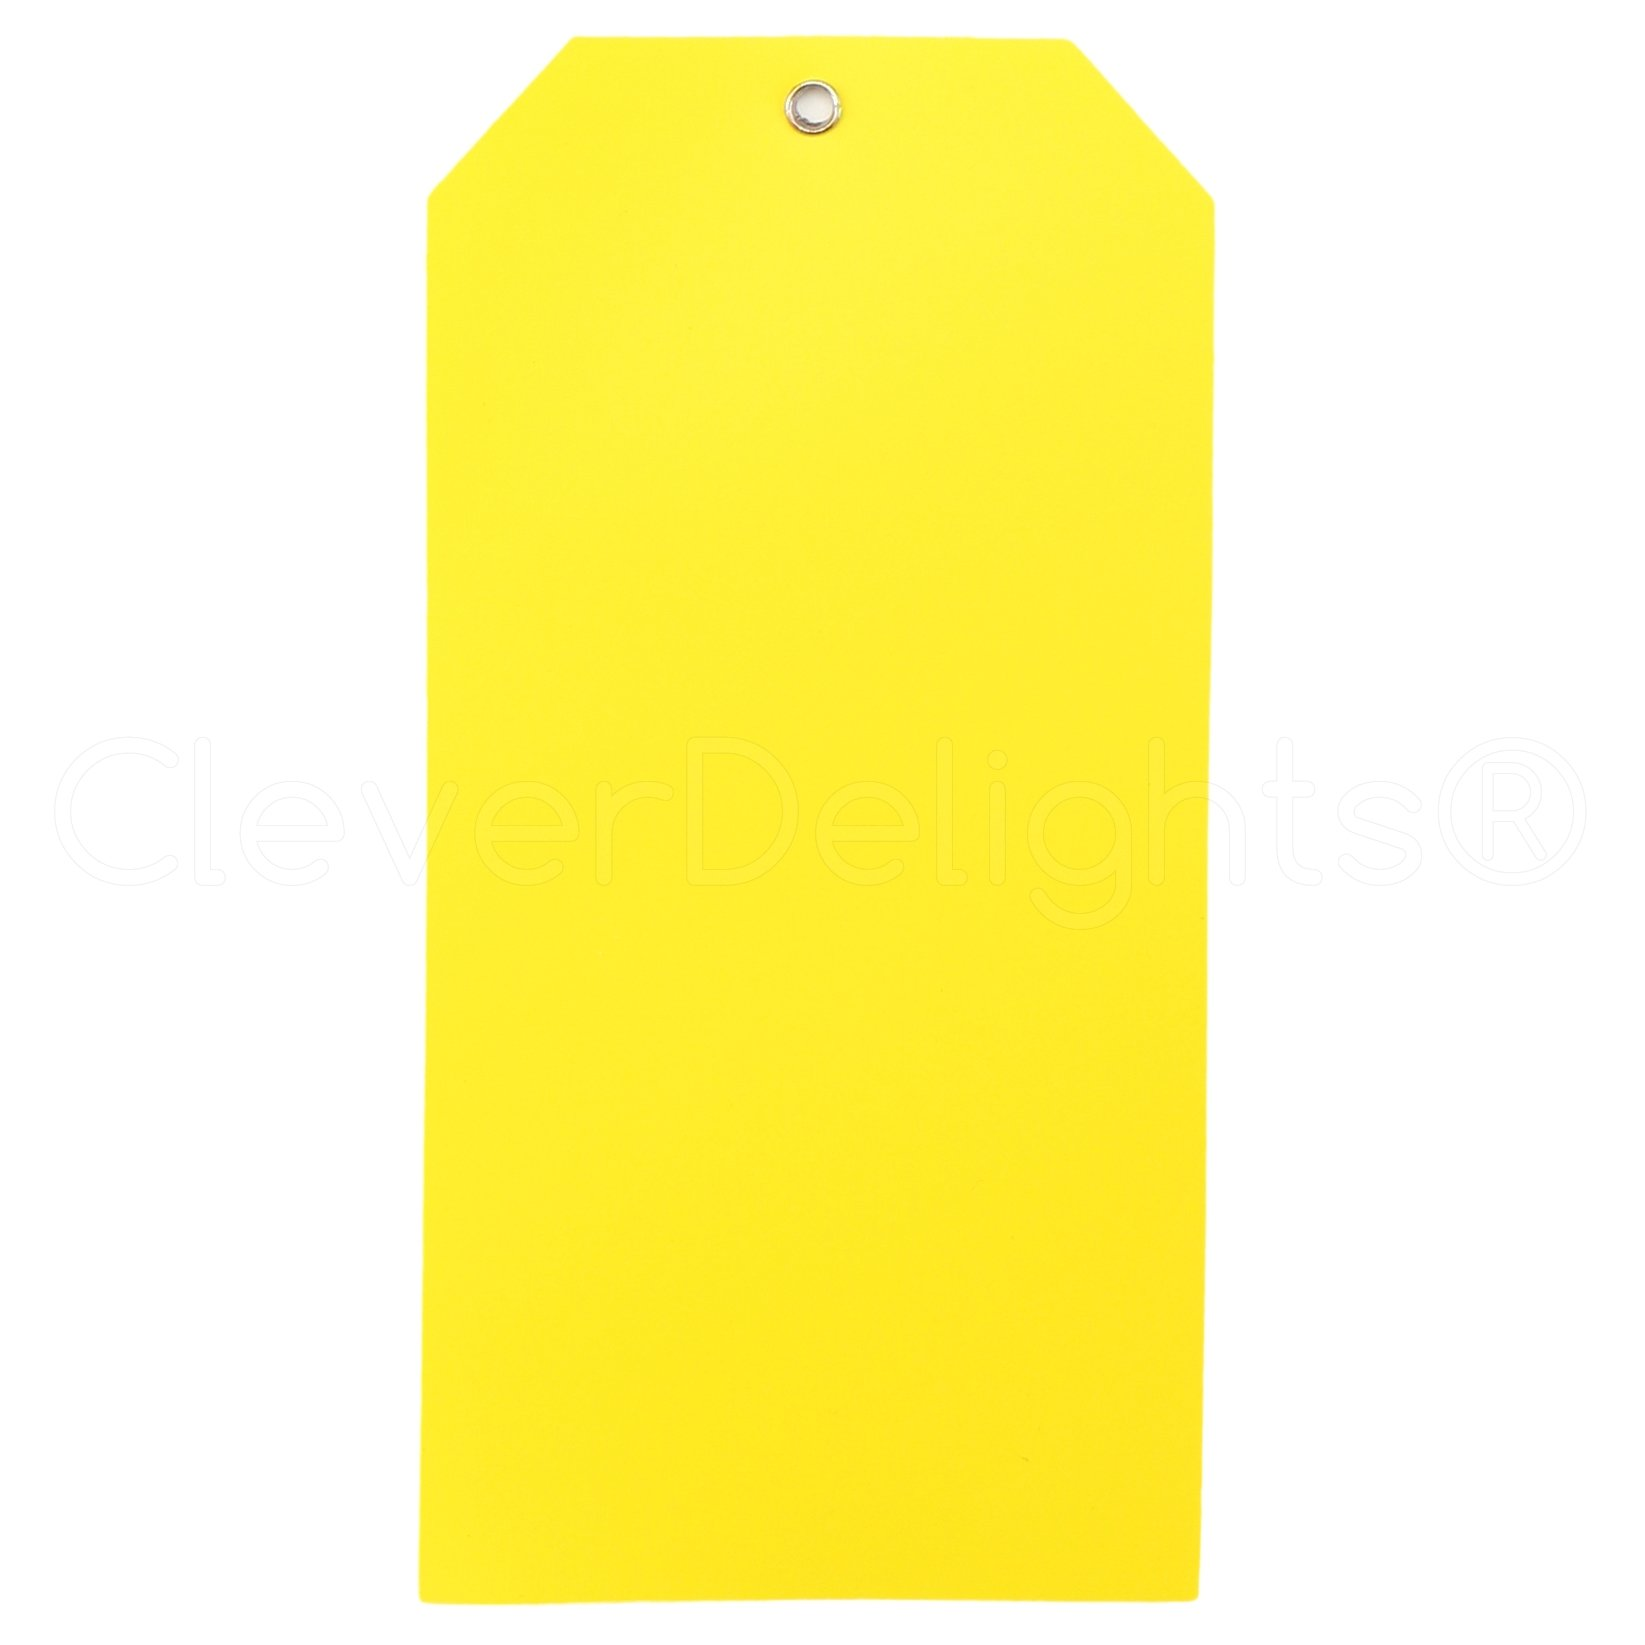 100 Pack - CleverDelights Large Yellow Plastic Tags - 6.25'' x 3.125'' - Tear-Proof and Waterproof - Inventory Asset Identification Price Tags